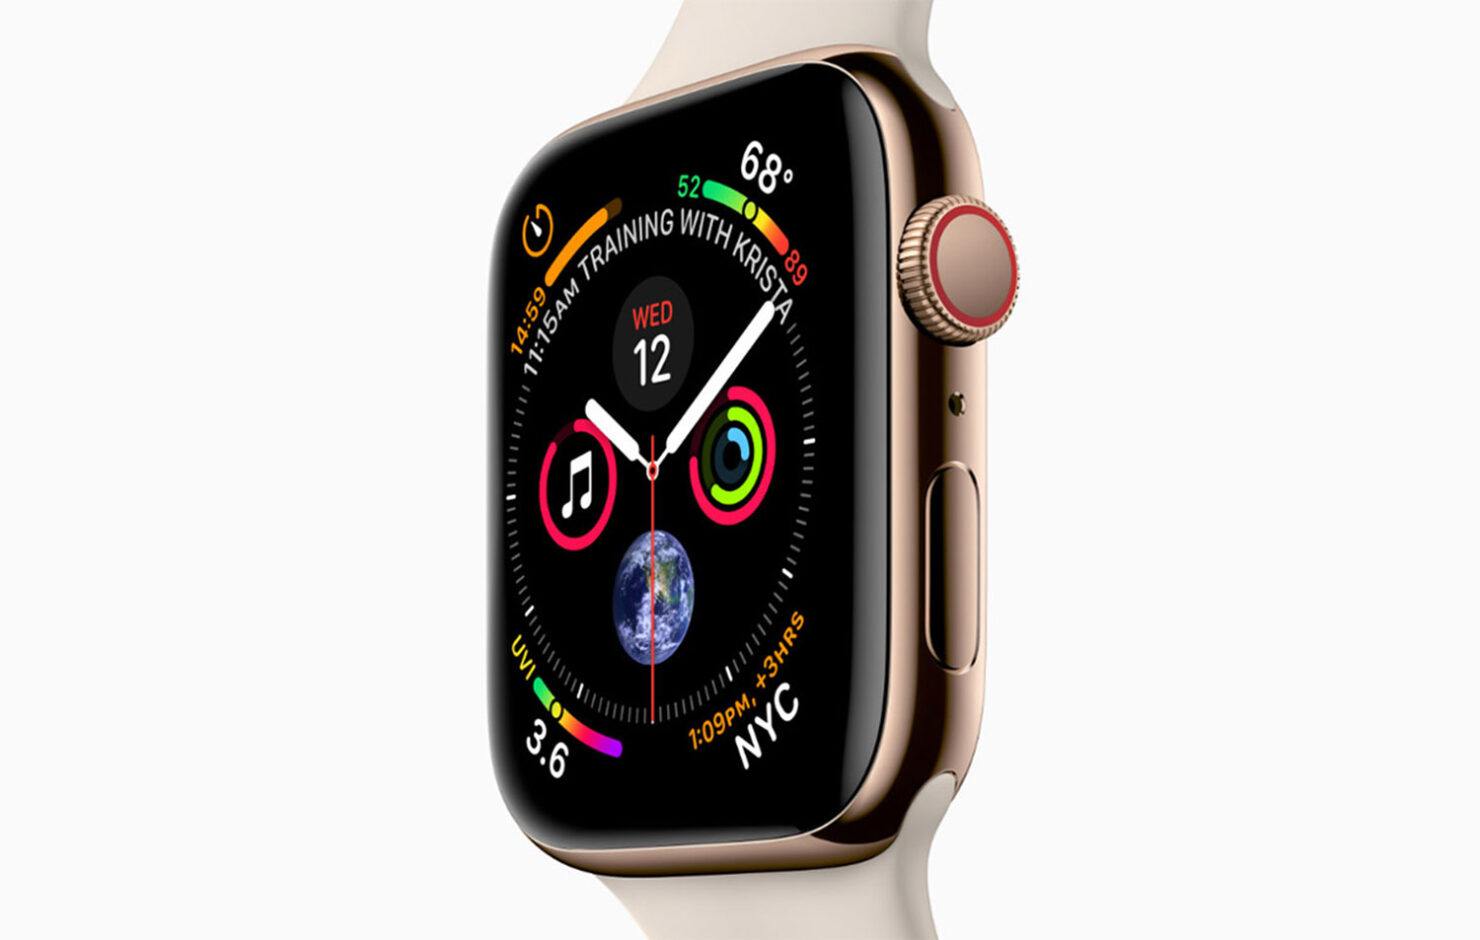 Apple Watch Sporting an iPhone-Like Notch at the Top With iOS Apps and Widgets Shown in This Latest Concept